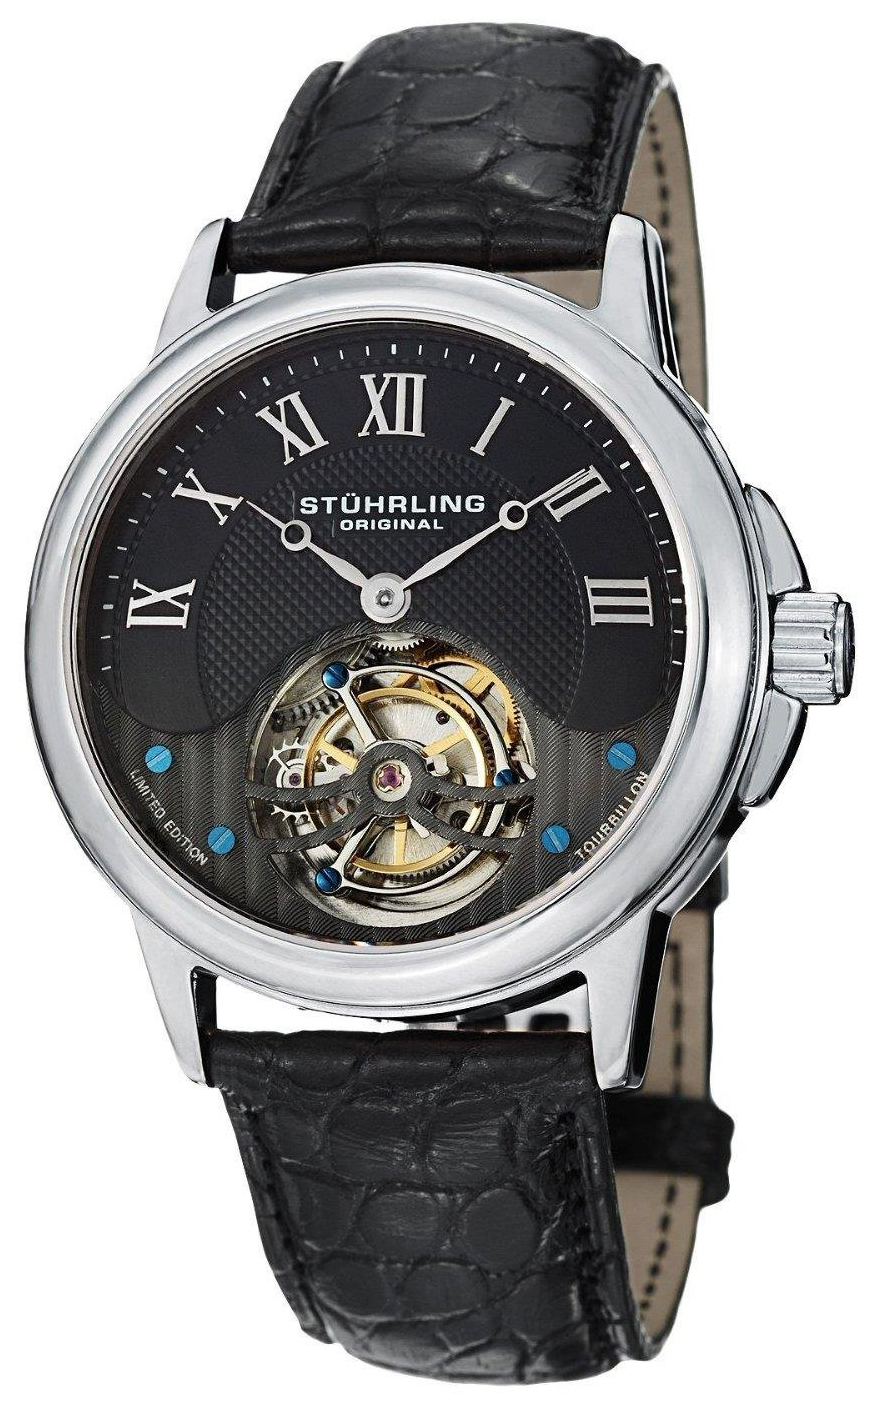 Stührling Original Tourbillon Herrklocka 541.331XK1 Svart/Läder Ø42 mm - Stührling Original